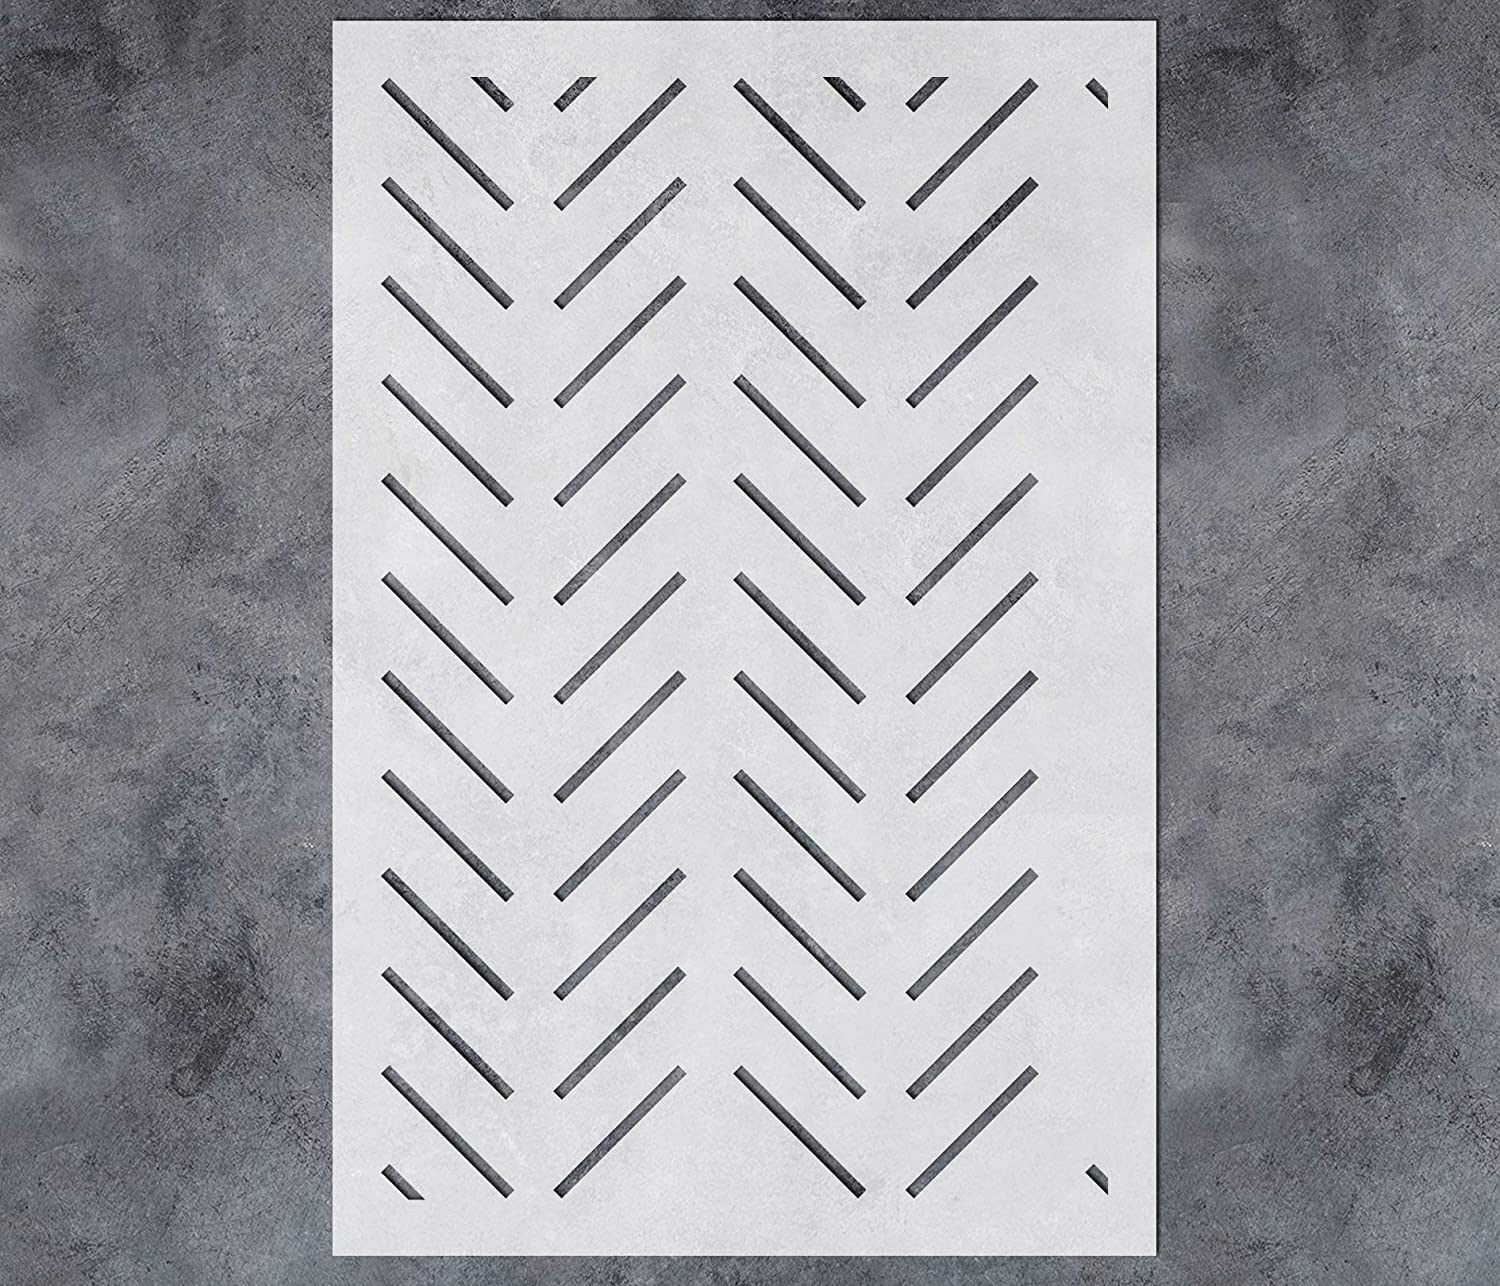 GSS Designs Large Herringbone Wall Stencil (16x24Inch) - Stencils for Painting on Wood Wall Furniture - Reusable Herringbone Stencil Template for Wall Decor (SL-099)